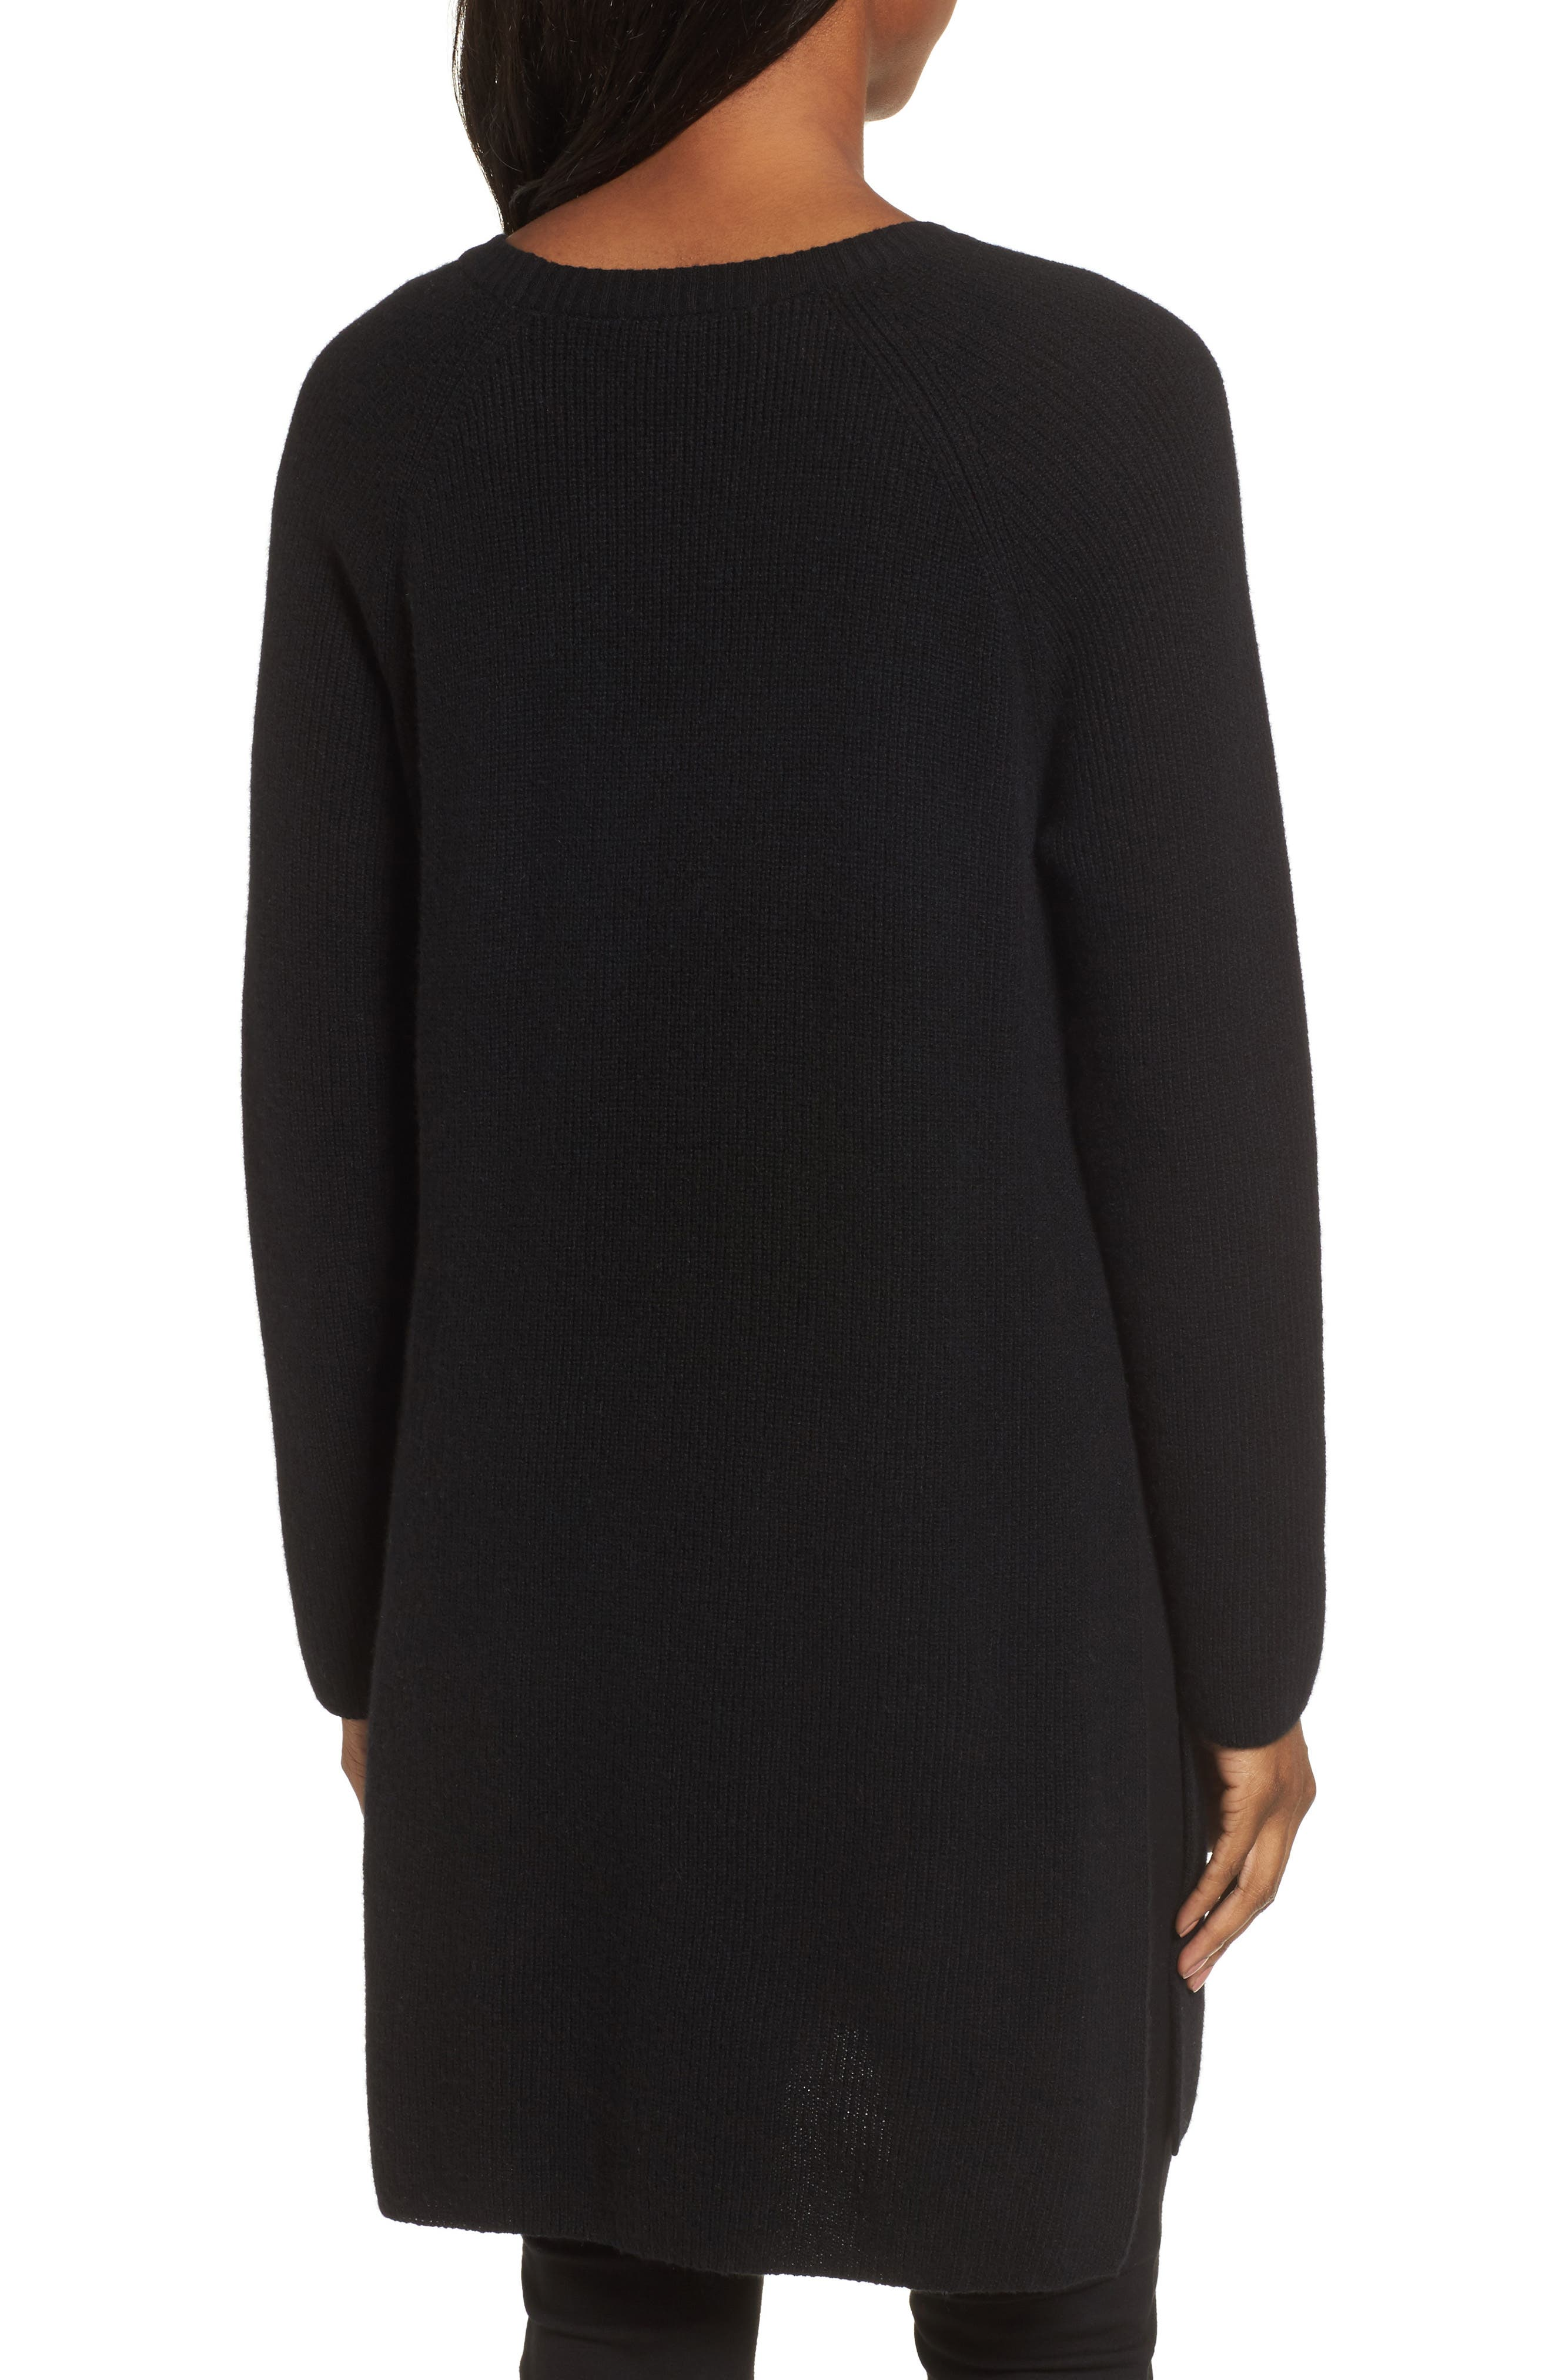 Cashmere Tunic Sweater,                             Alternate thumbnail 2, color,                             001